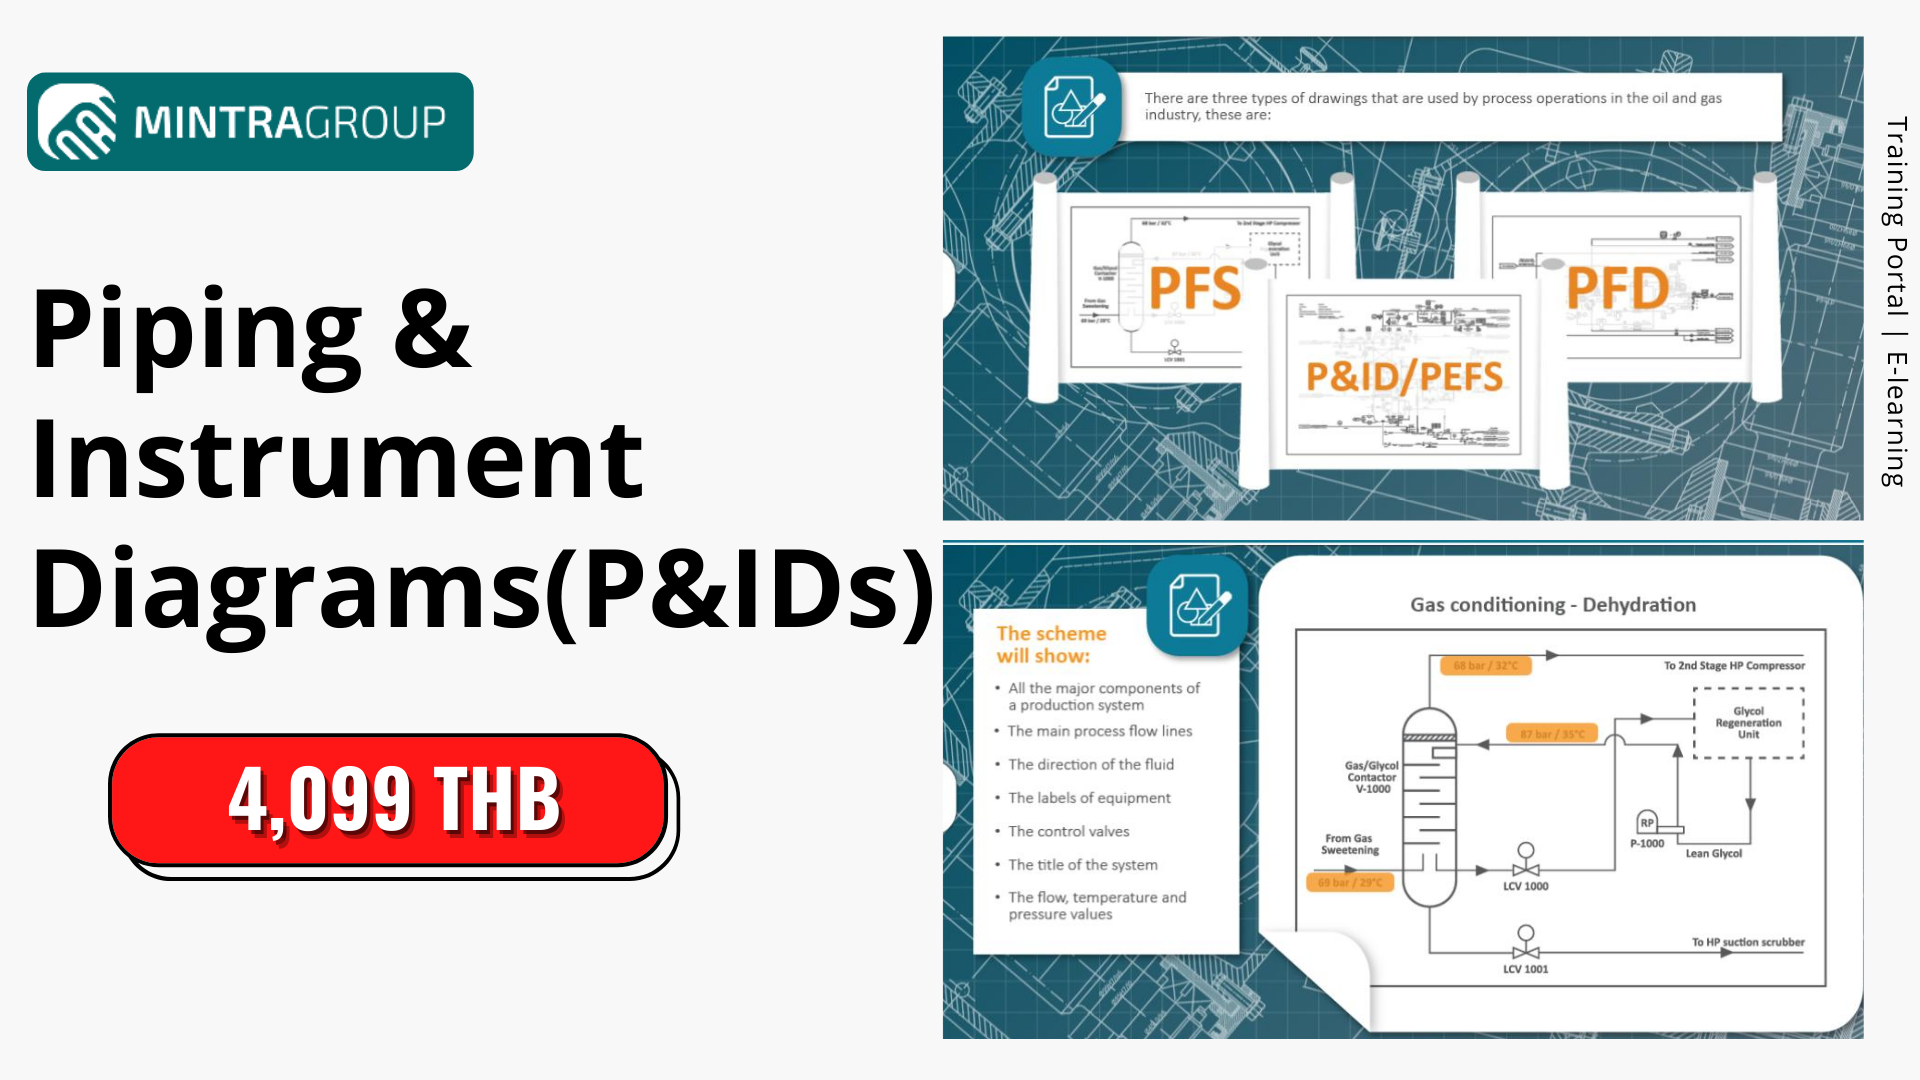 Piping and Instrument Diagrams (P&IDs)